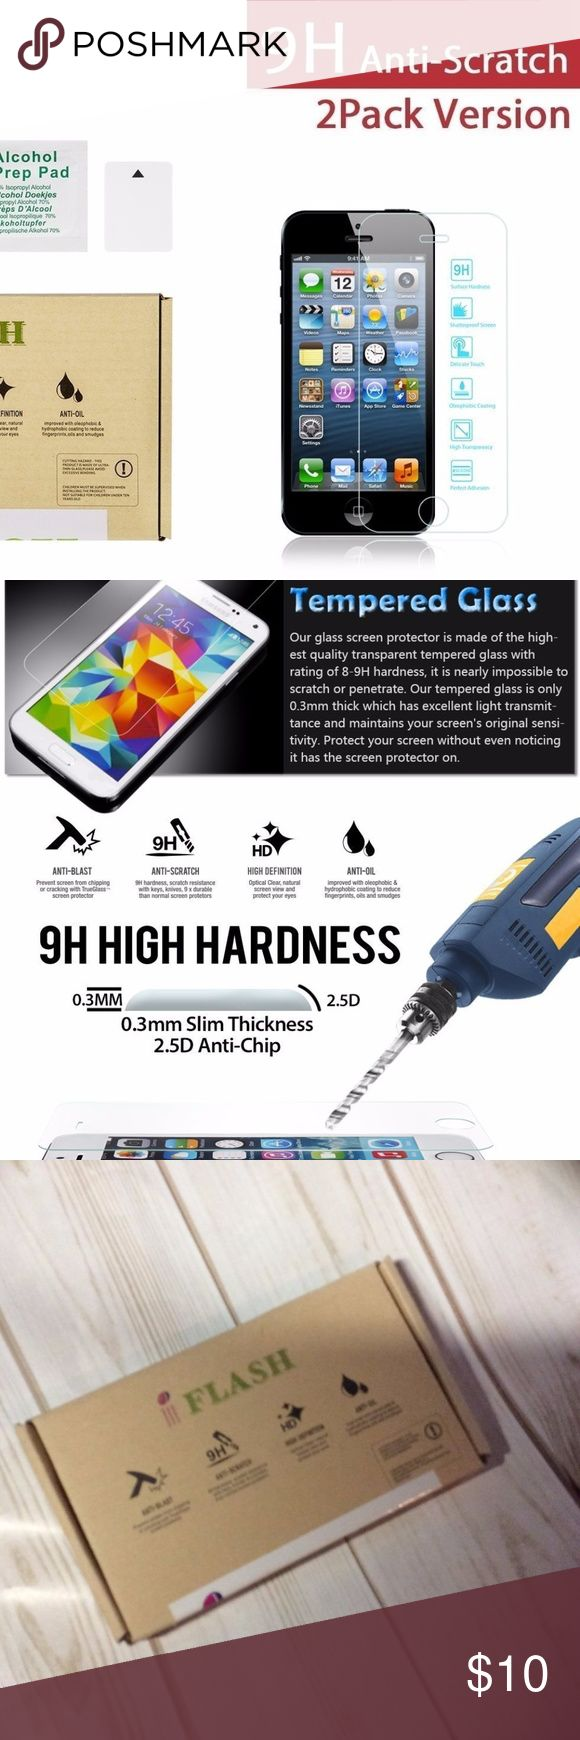 iPhone 5/5S/5C Tempered Glass iFlash® 2 Pack of Premium Tempered Glass Screen Protector For Apple iPhone 5/5S/5C - Protect Your Screen from Scratches and Bubble Free - Maximize Your Resale Value - 99.99% Clarity and Touchscreen Accuracy (2Pack, Retail Package)  box 2 Accessories Phone Cases